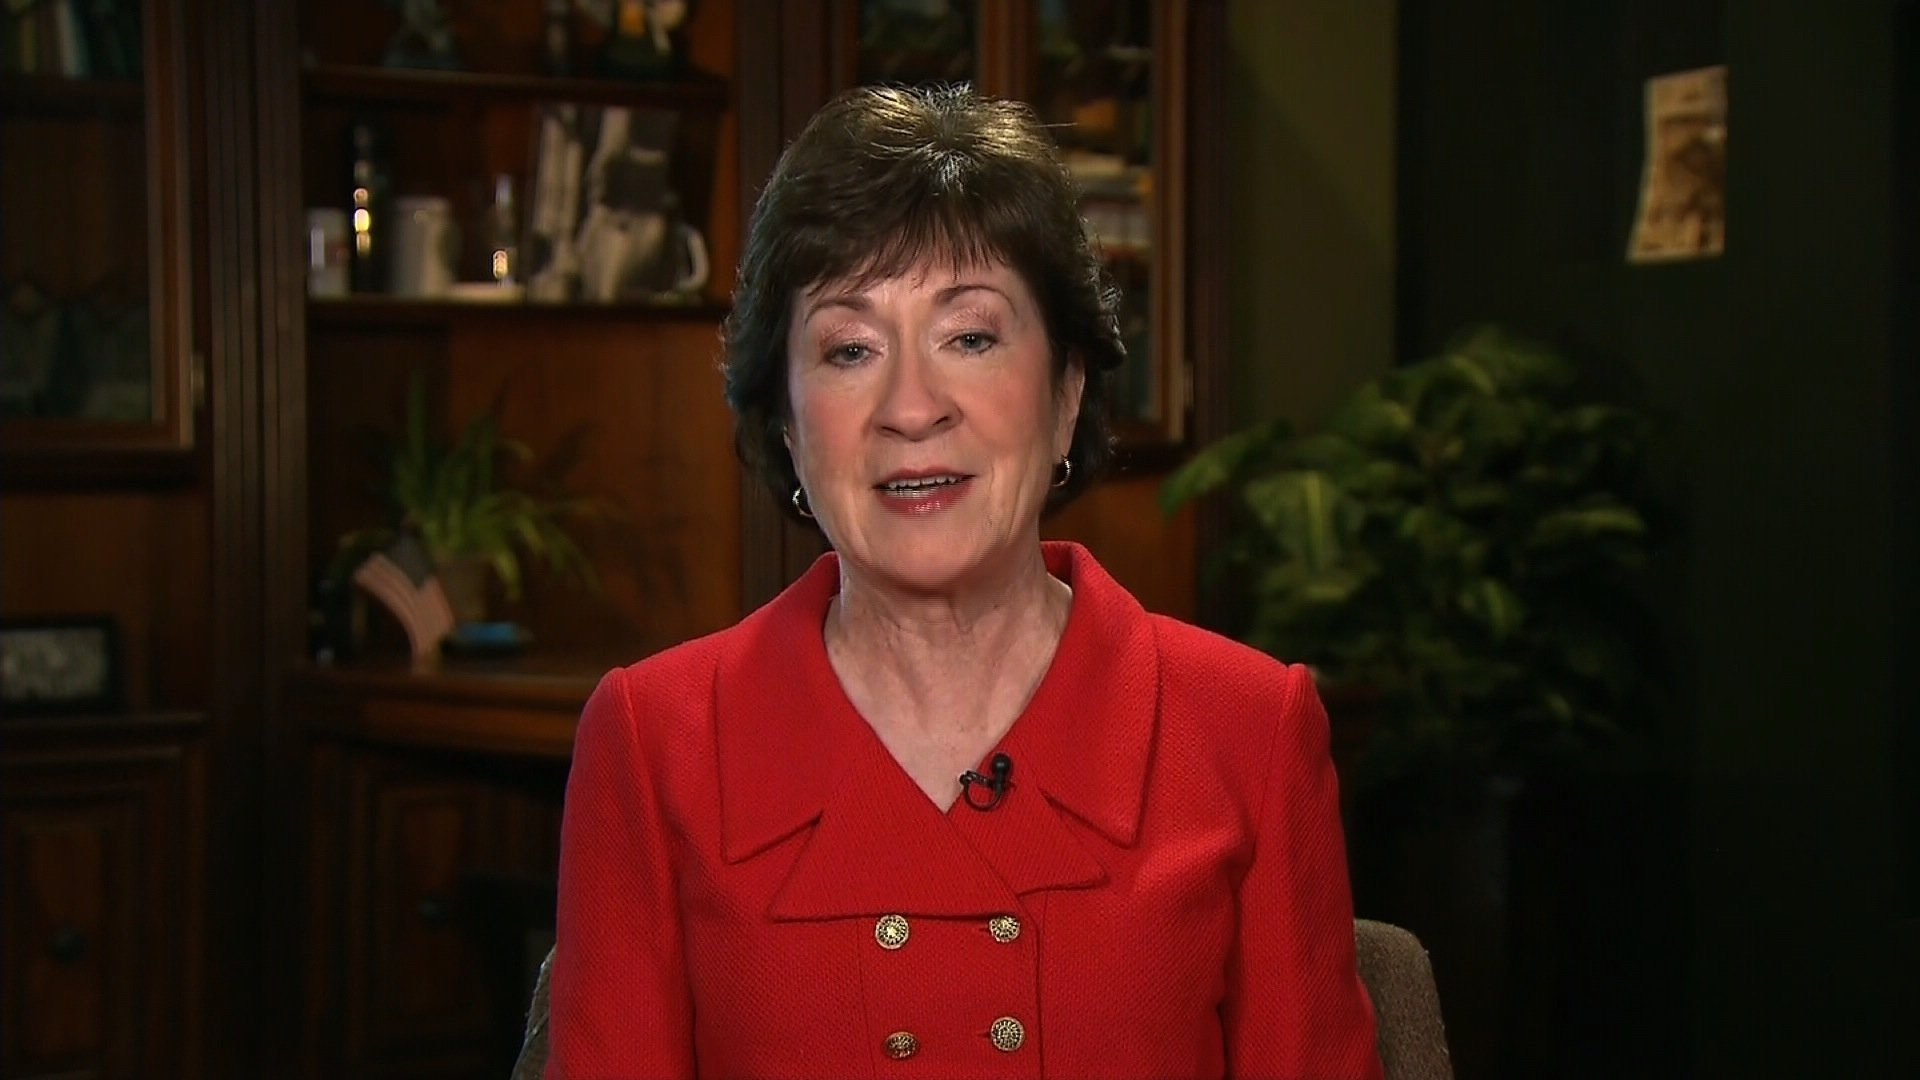 Susan Collins throws shutdown shade at Ted Cruz: 'I am rendered speechless'